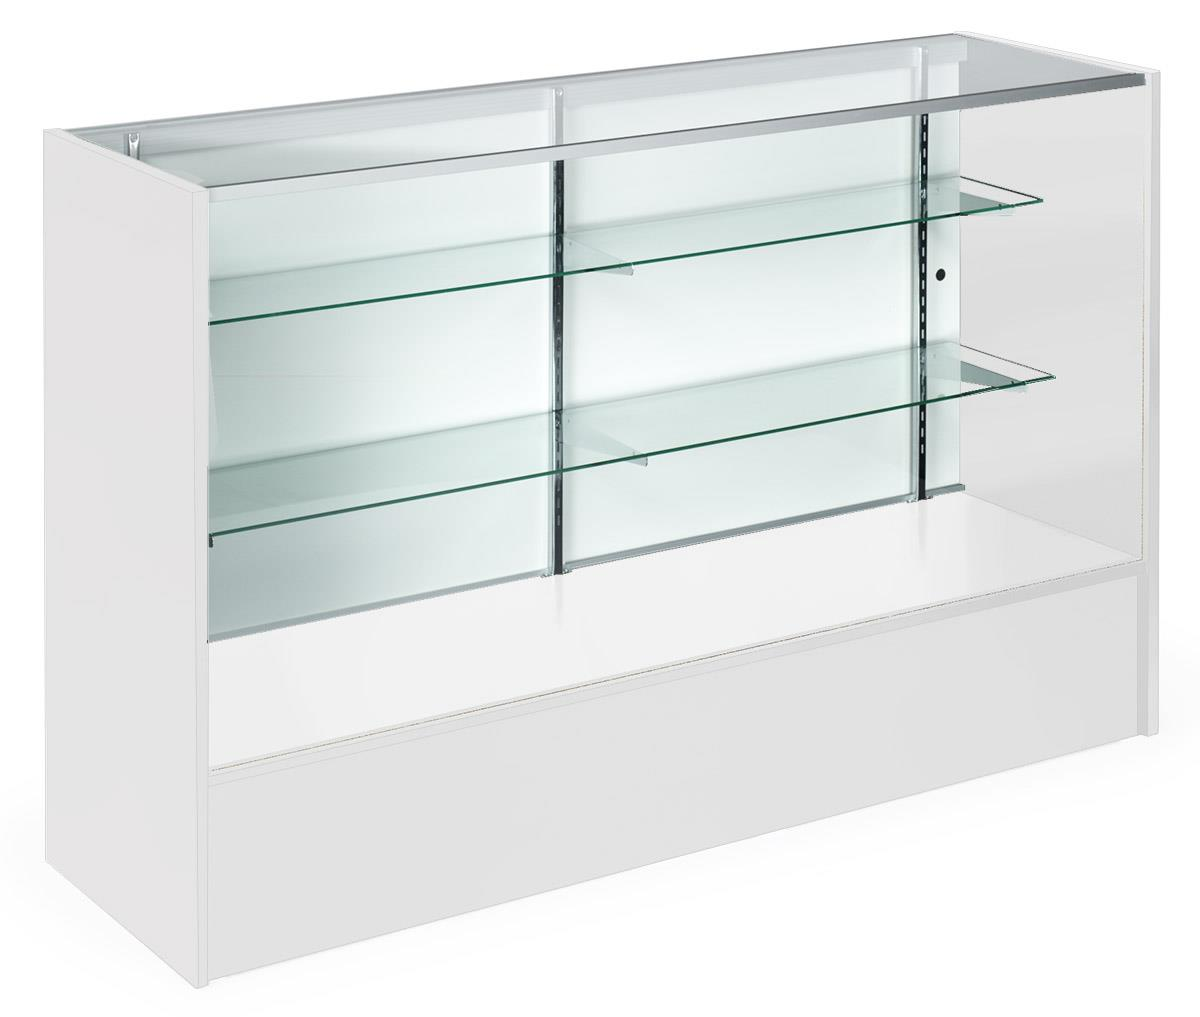 #3C5951 5' White Display Case Glass Open Front & (2) Adjustable  with 1200x1017 px of Best Glass Display Cabinet Adjustable Shelves 10171200 image @ avoidforclosure.info